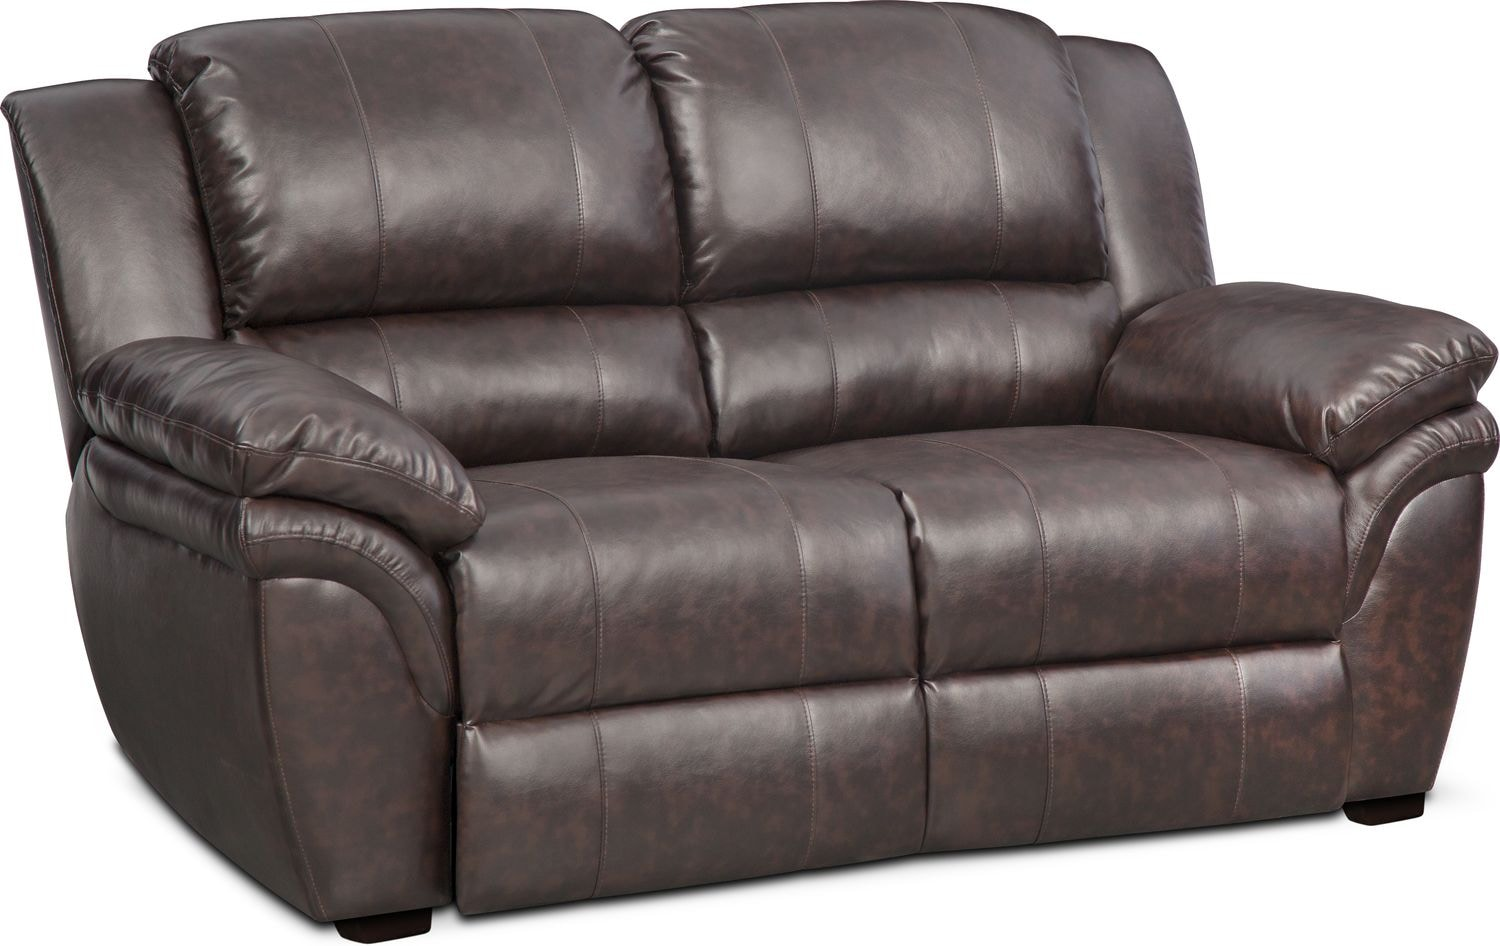 Living Room Furniture - Aldo Stationary Loveseat